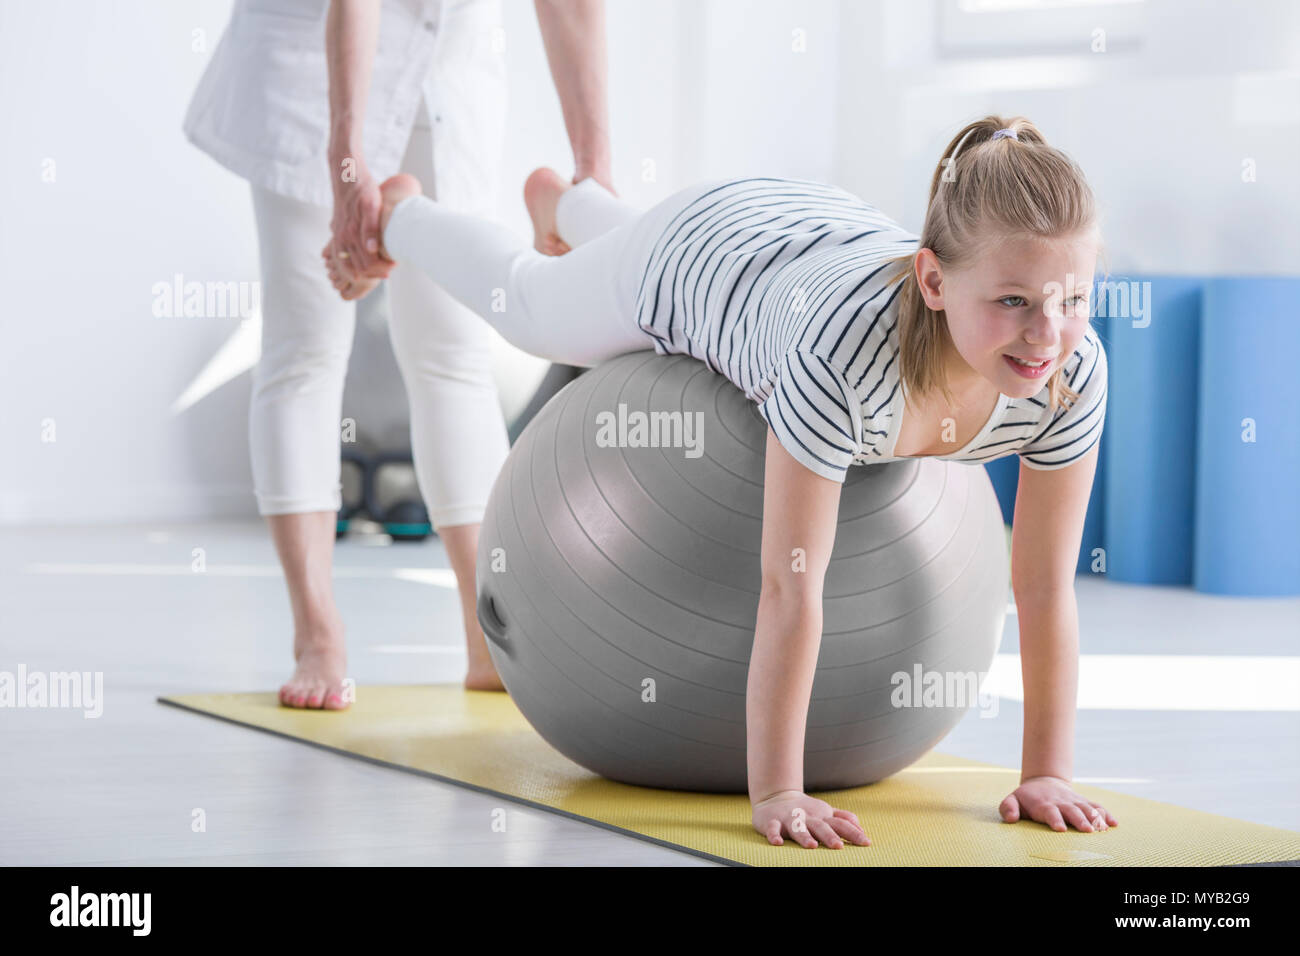 Smiling young girl lying on ball during pediatric occupational therapy - Stock Image